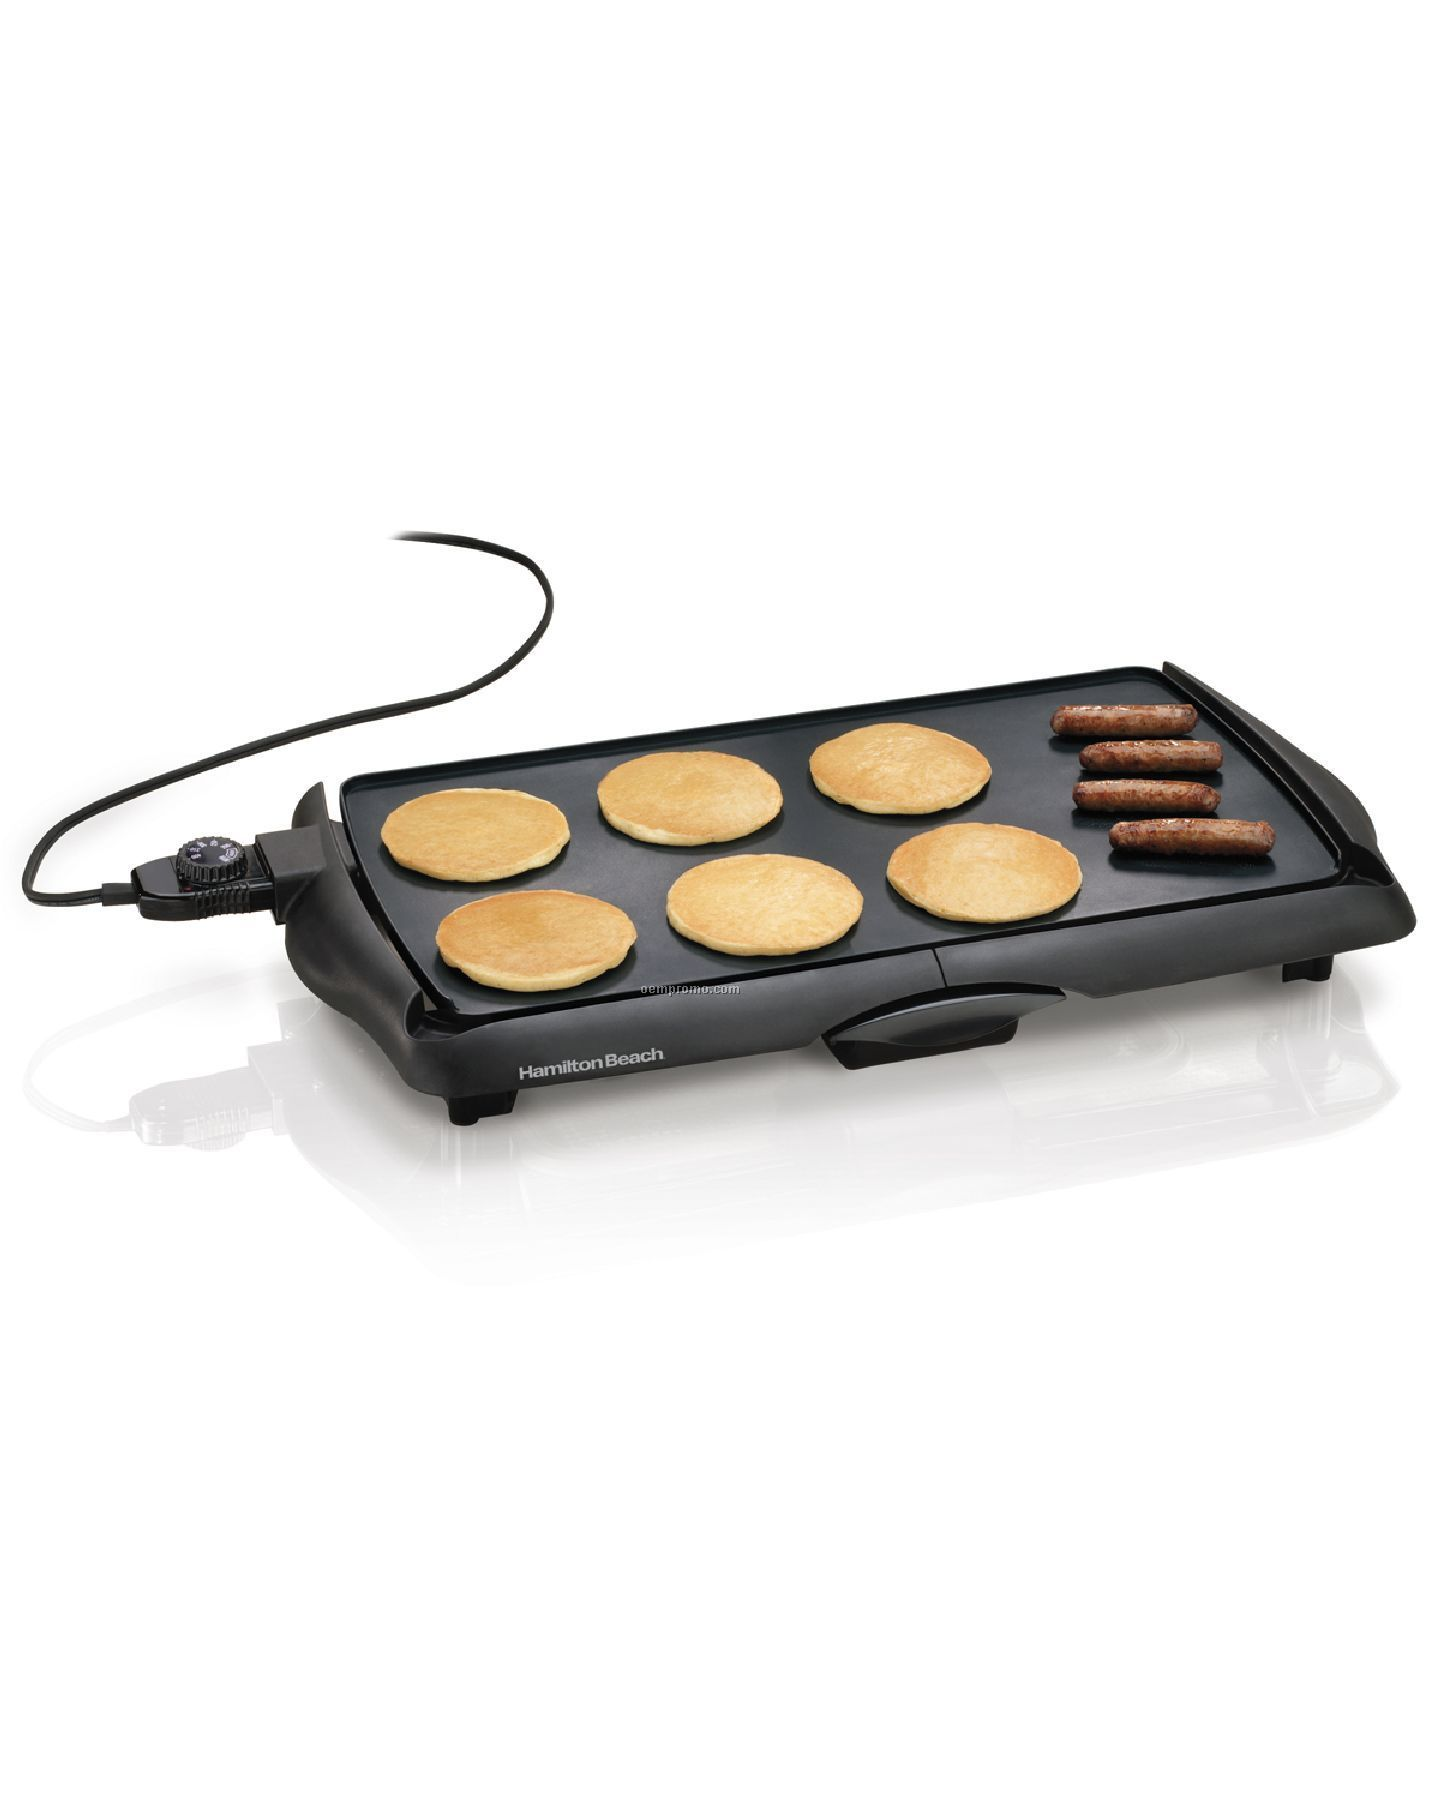 Hamilton Beach - Griddles - 200 Sq In Non-stick Griddle